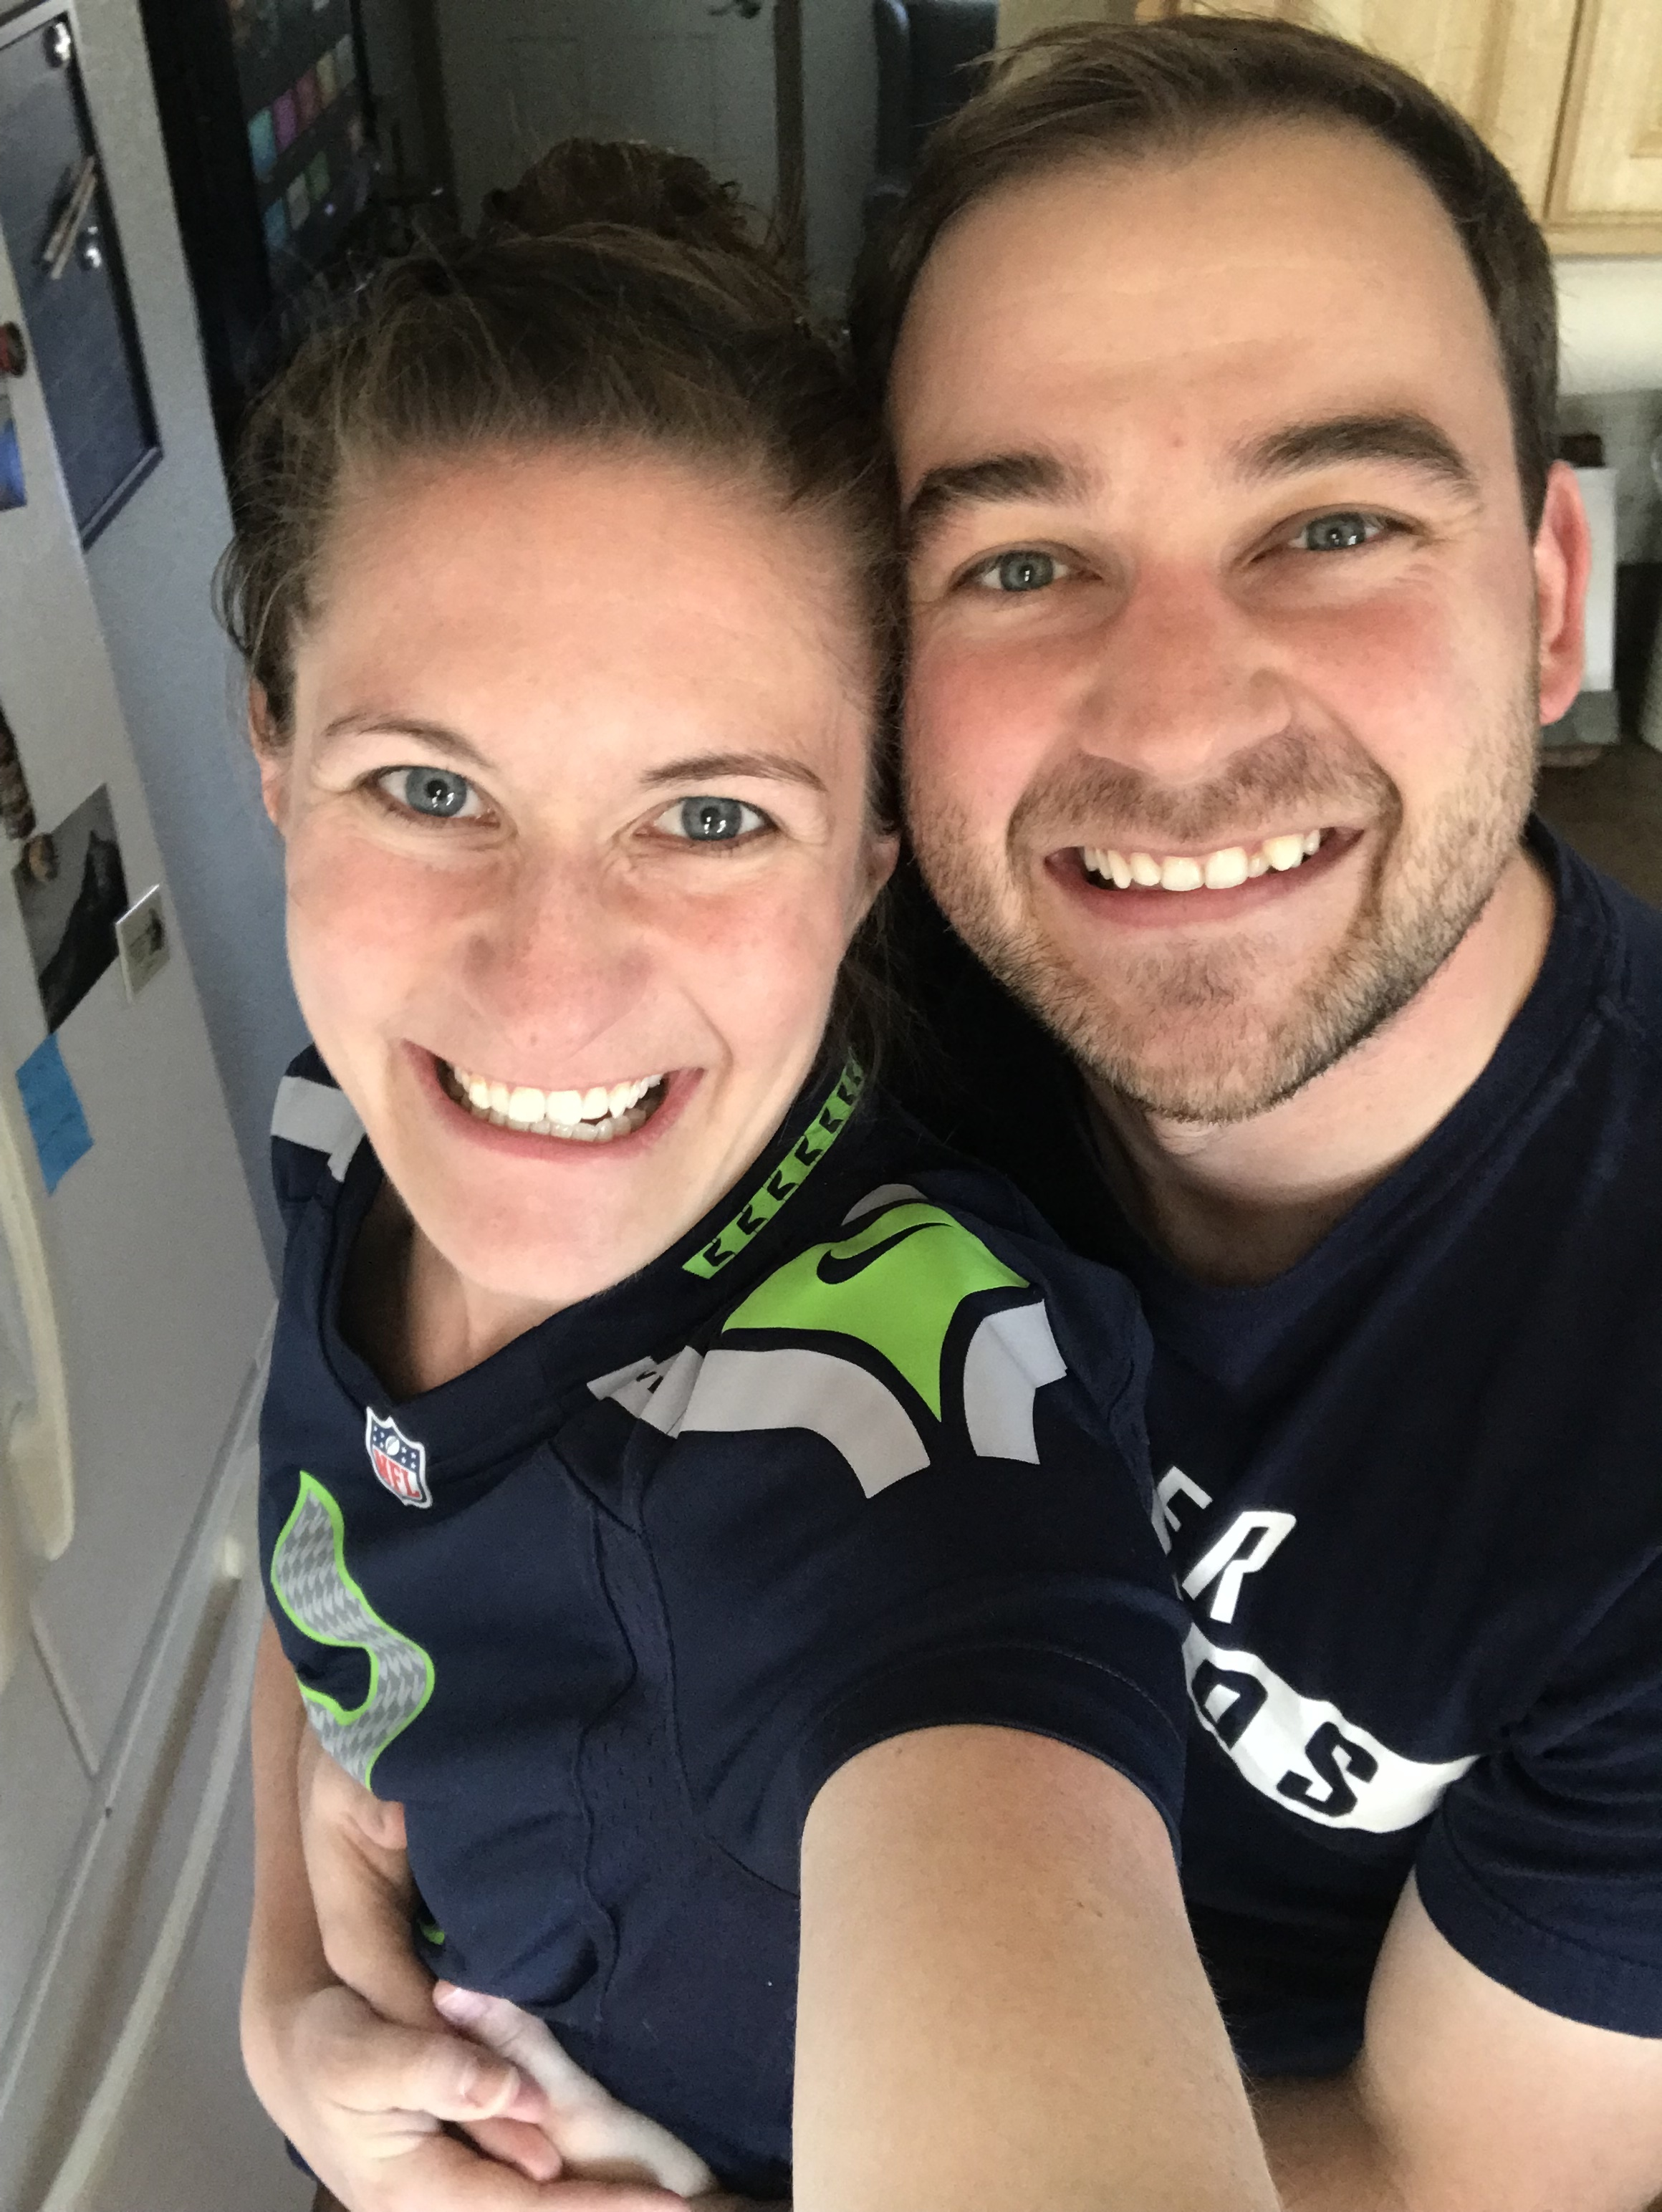 Football season is pretty great around here! Kelsey's a raging Seahawk fan while Jake's a Bronco fan. I think the Seahawk colors are winning him over though…